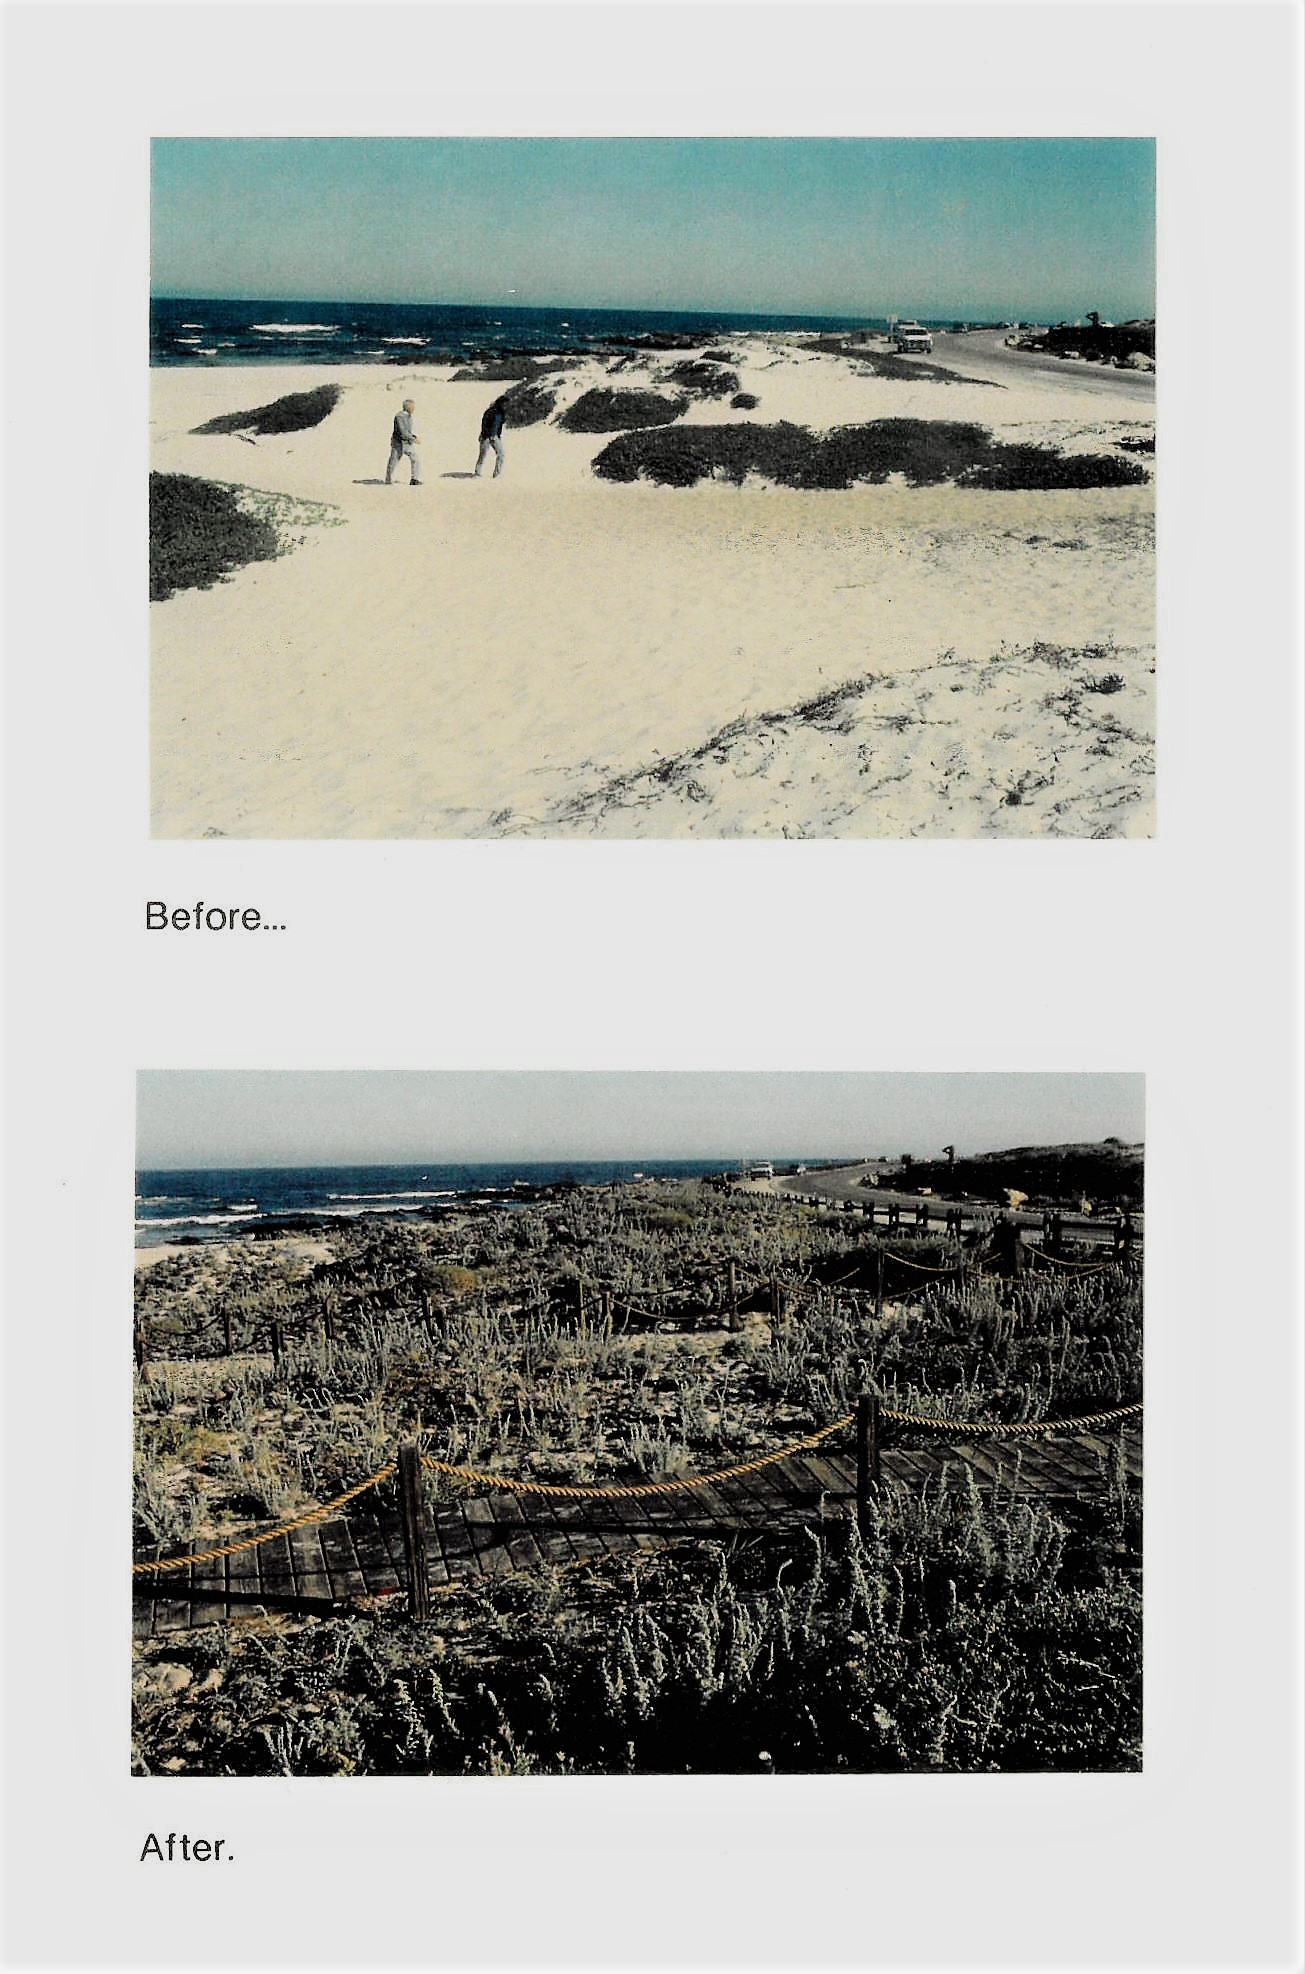 Before-After Beach Restoration Image